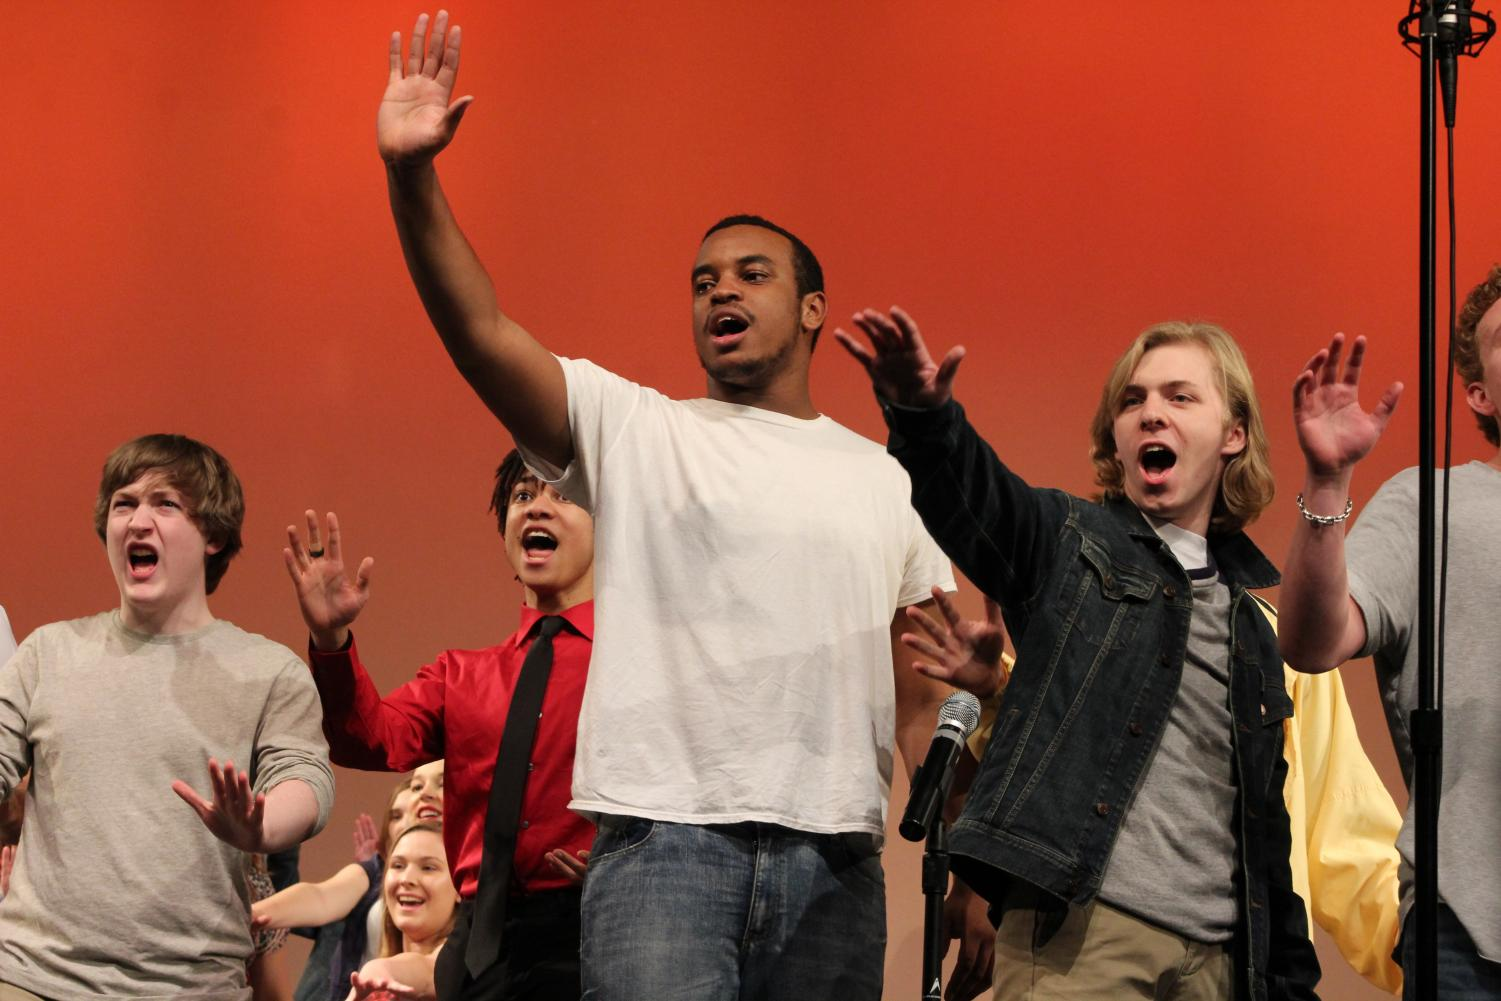 Anthony+Speech+and+Matt+Johnson%2C+seniors%2C+raise+their+arms+during+one+of+their+songs.